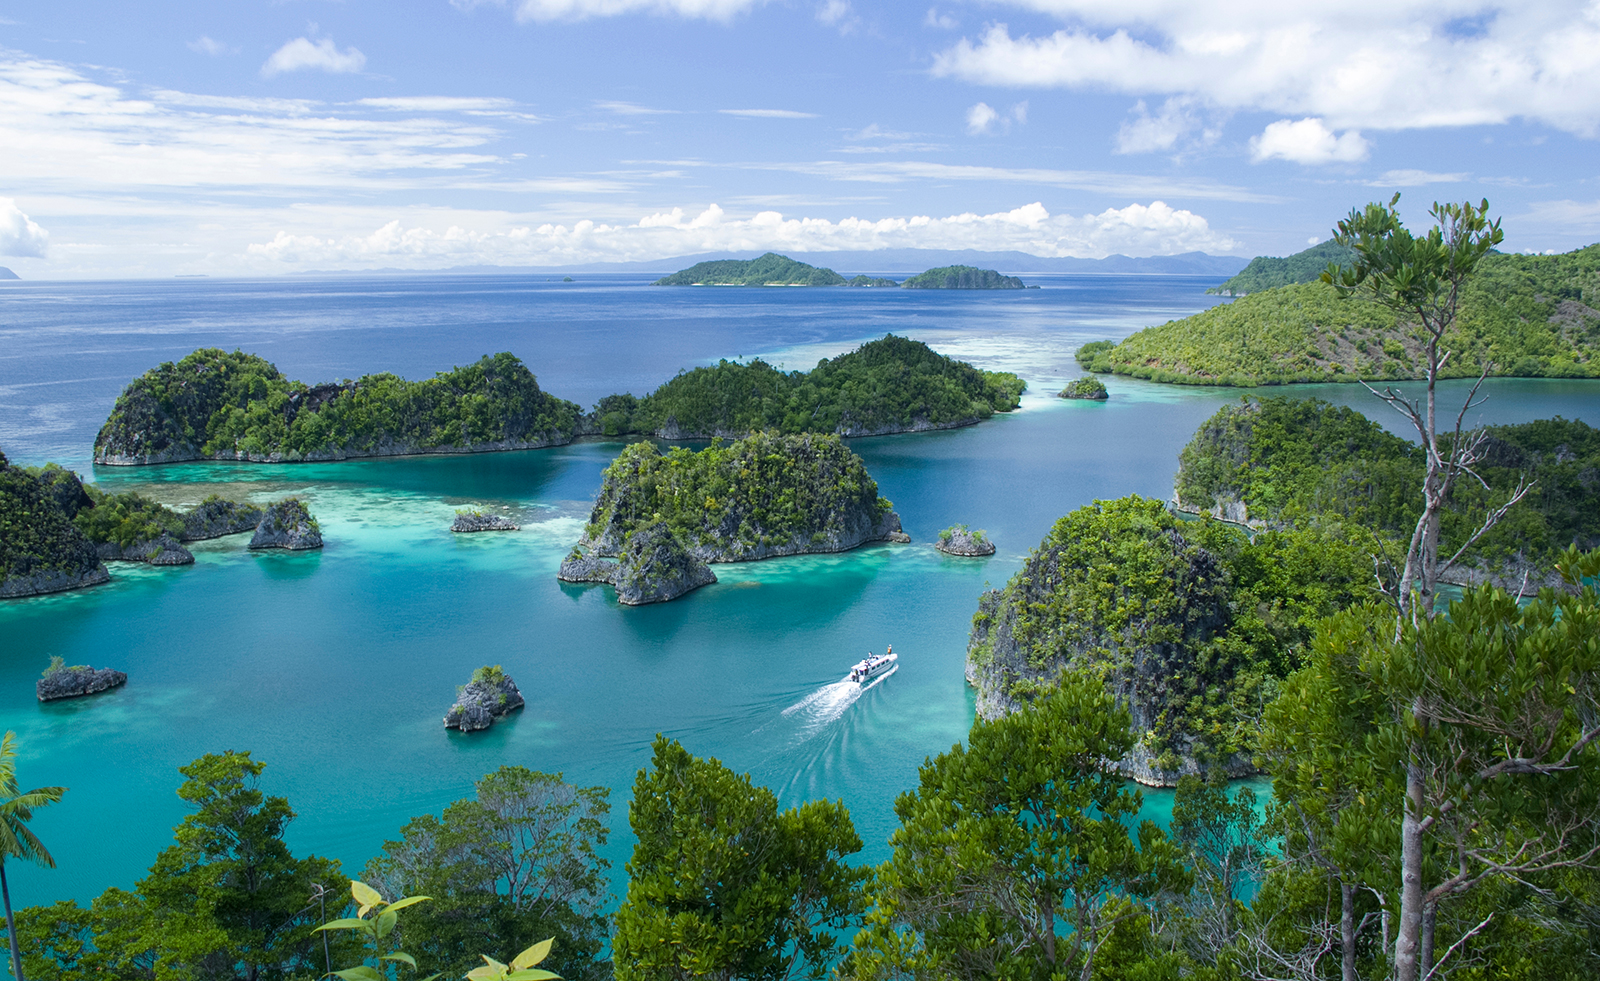 Travel to Raja Ampat from the Comfort of Your Home